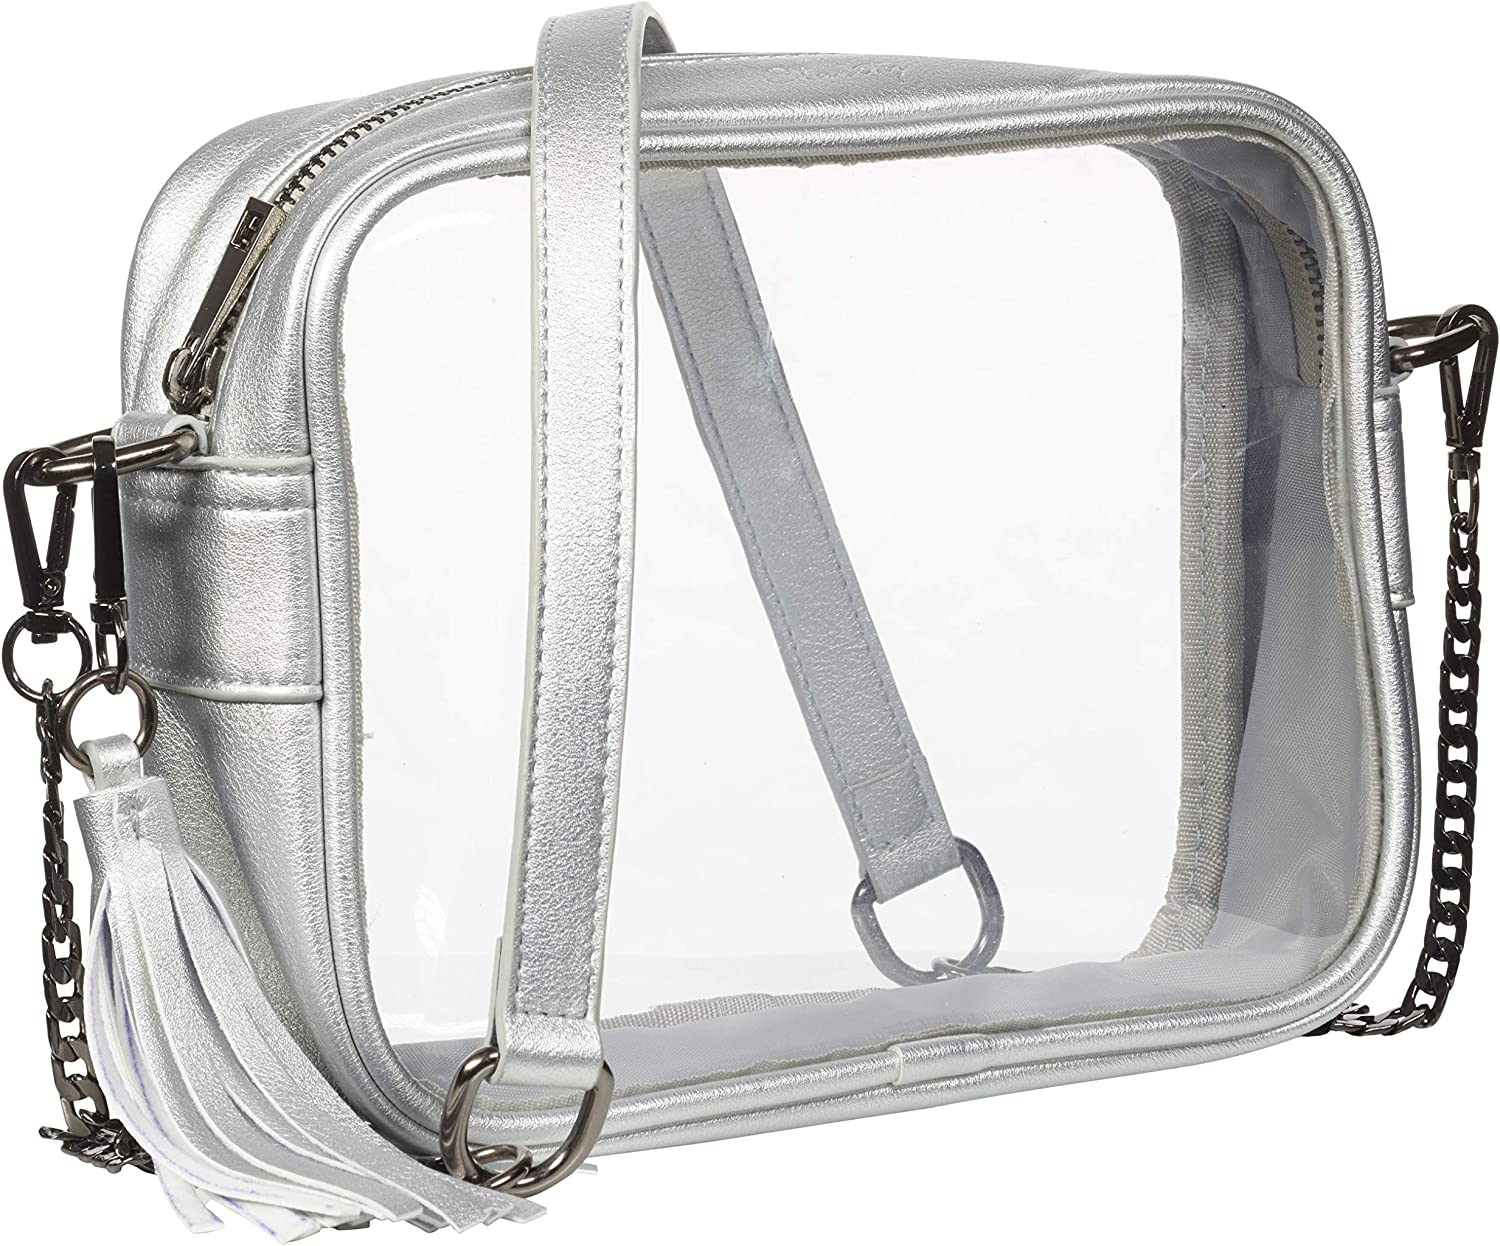 Clarity Handbags Stella Clear Women's Bag for Professional & College Sporting Events Clear Bag Stadium Policy Approved